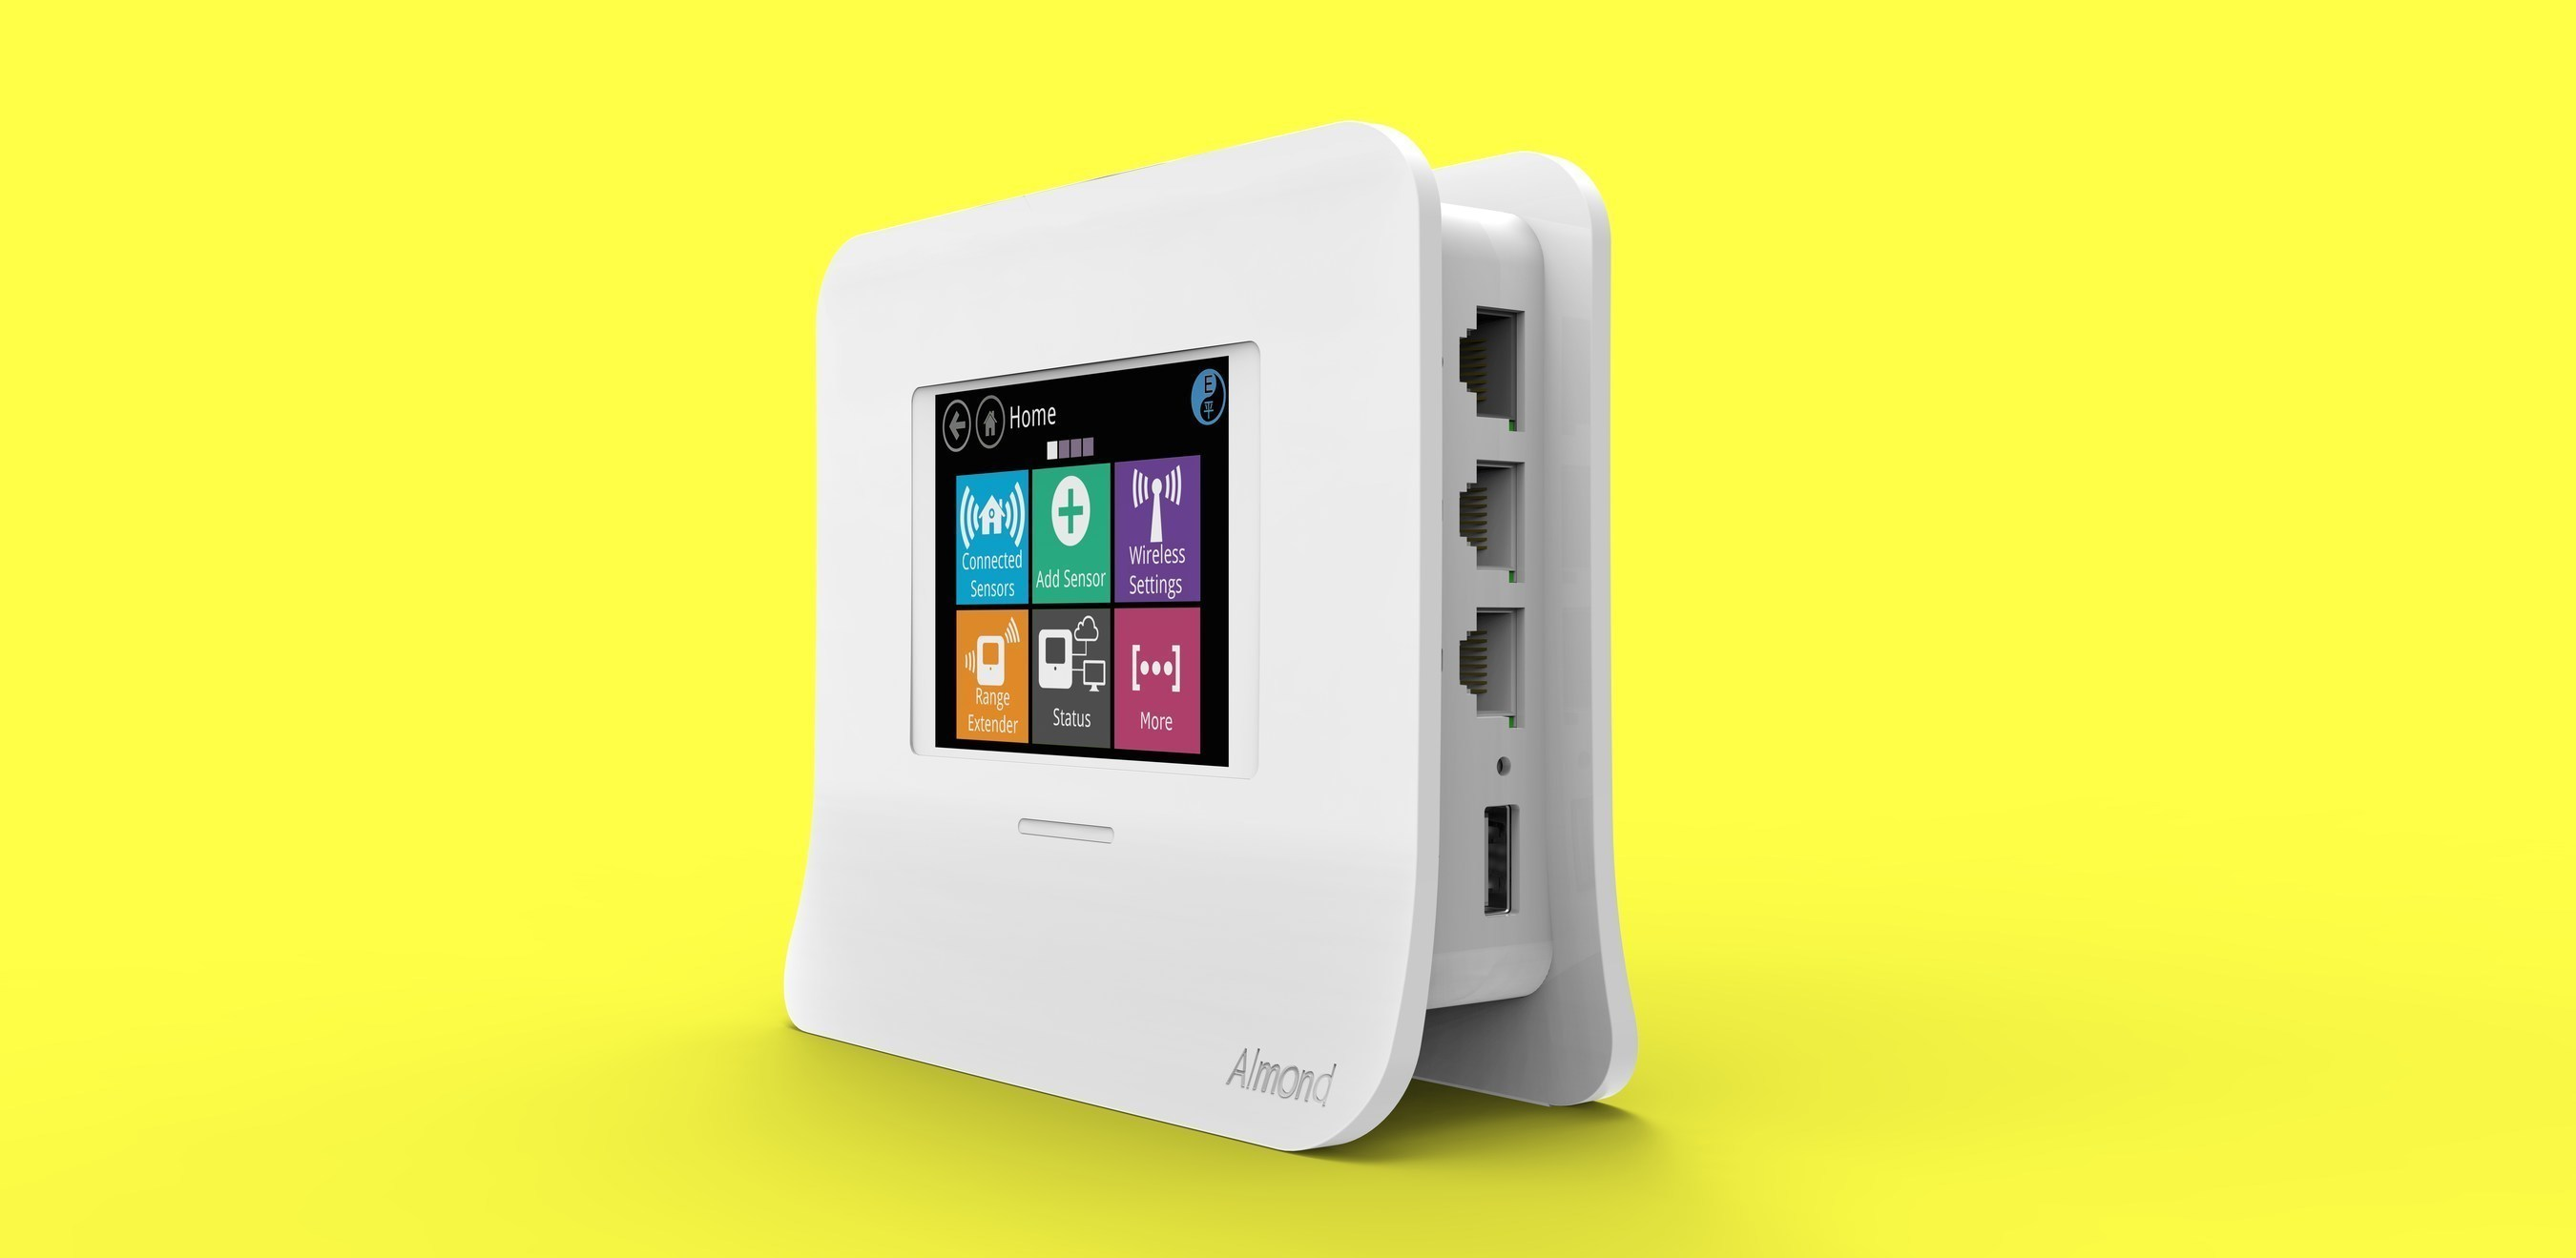 Securifi Introduces Almond 3 - The Most Robust Touchscreen Wireless Router and Smart Home Hub To Hit the Market